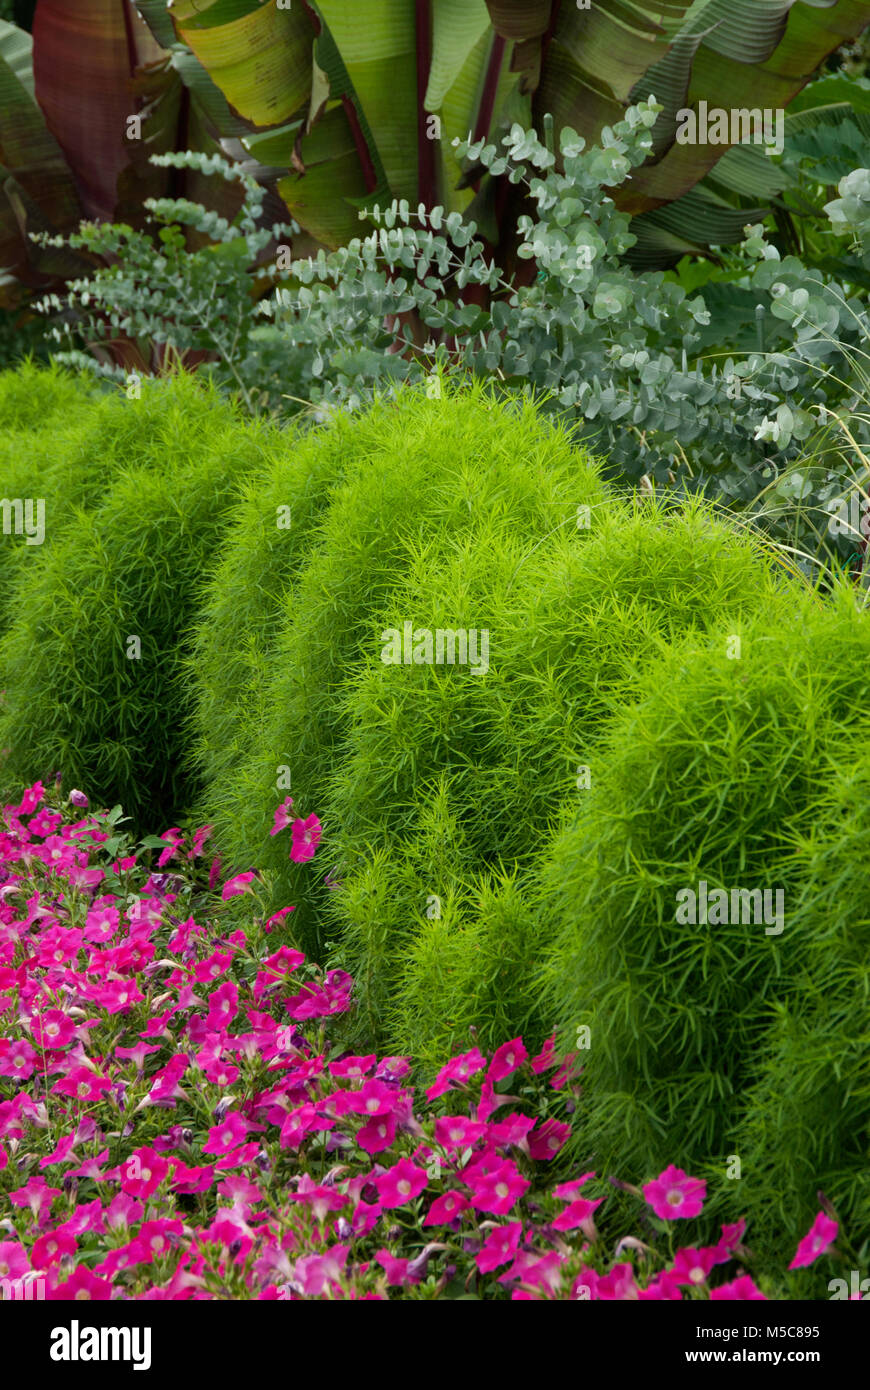 Kochia Scoparia Burning Bush Stock Photo 175446913 Alamy